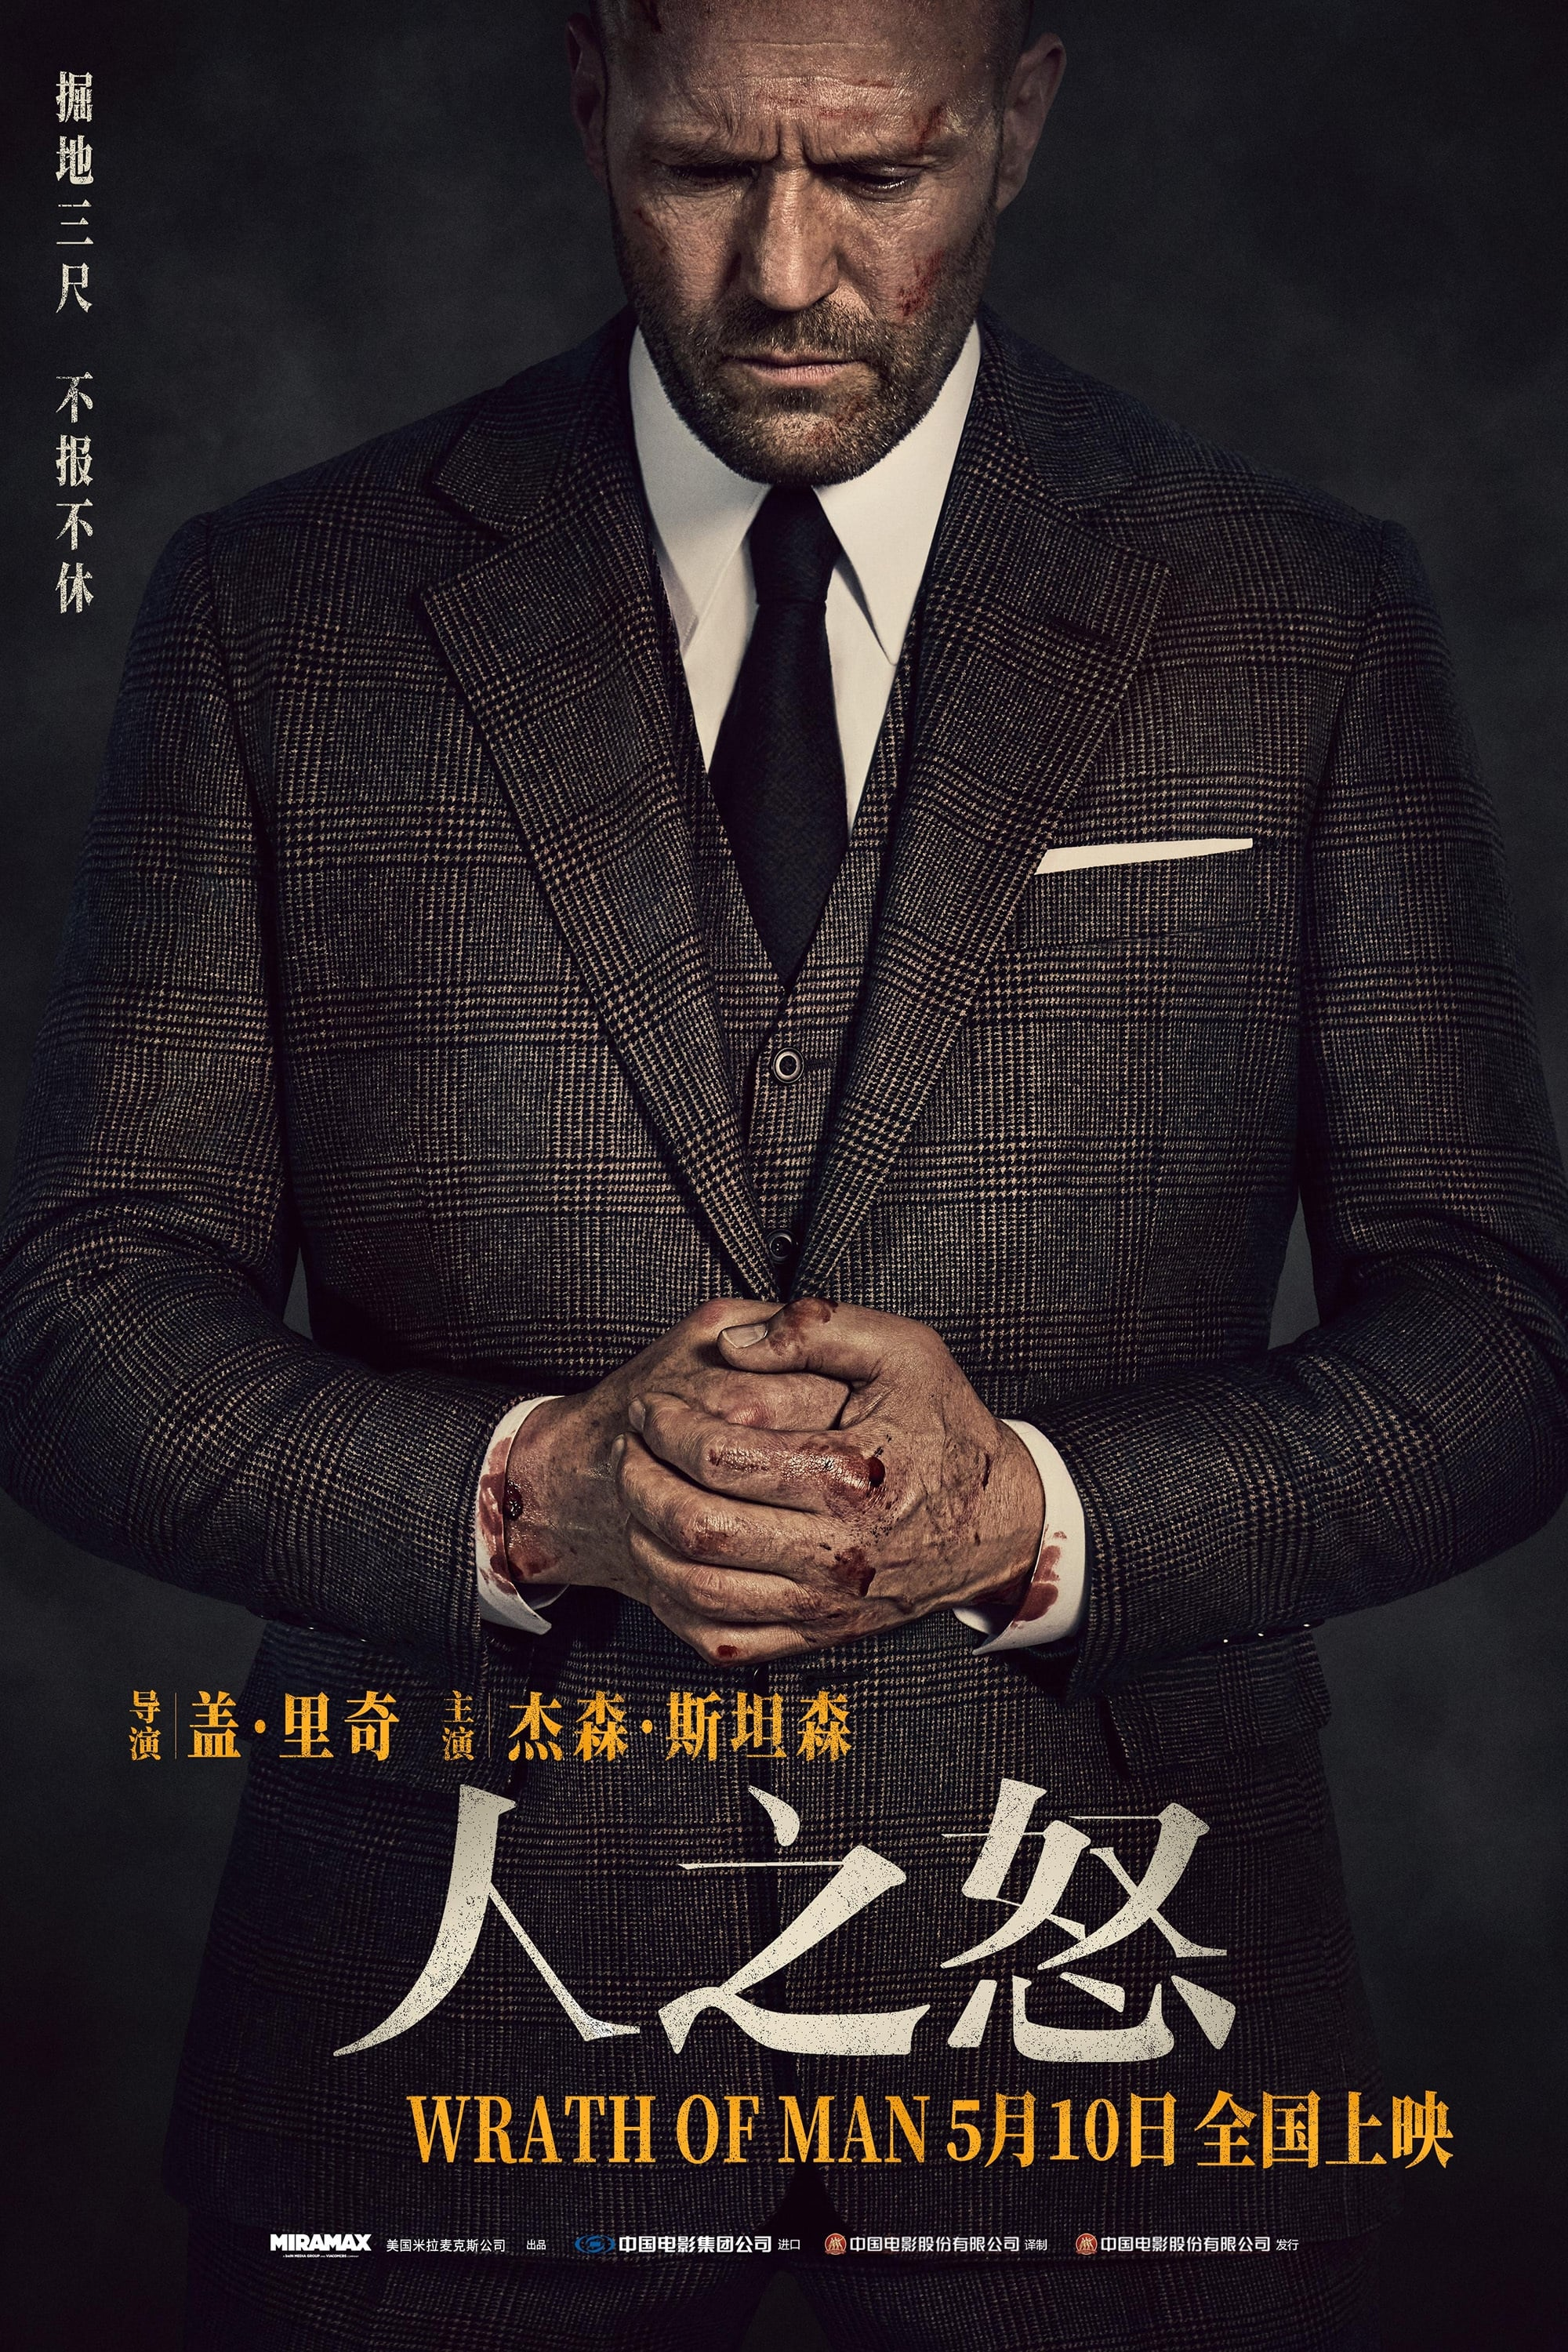 Poster and image movie Wrath of Man